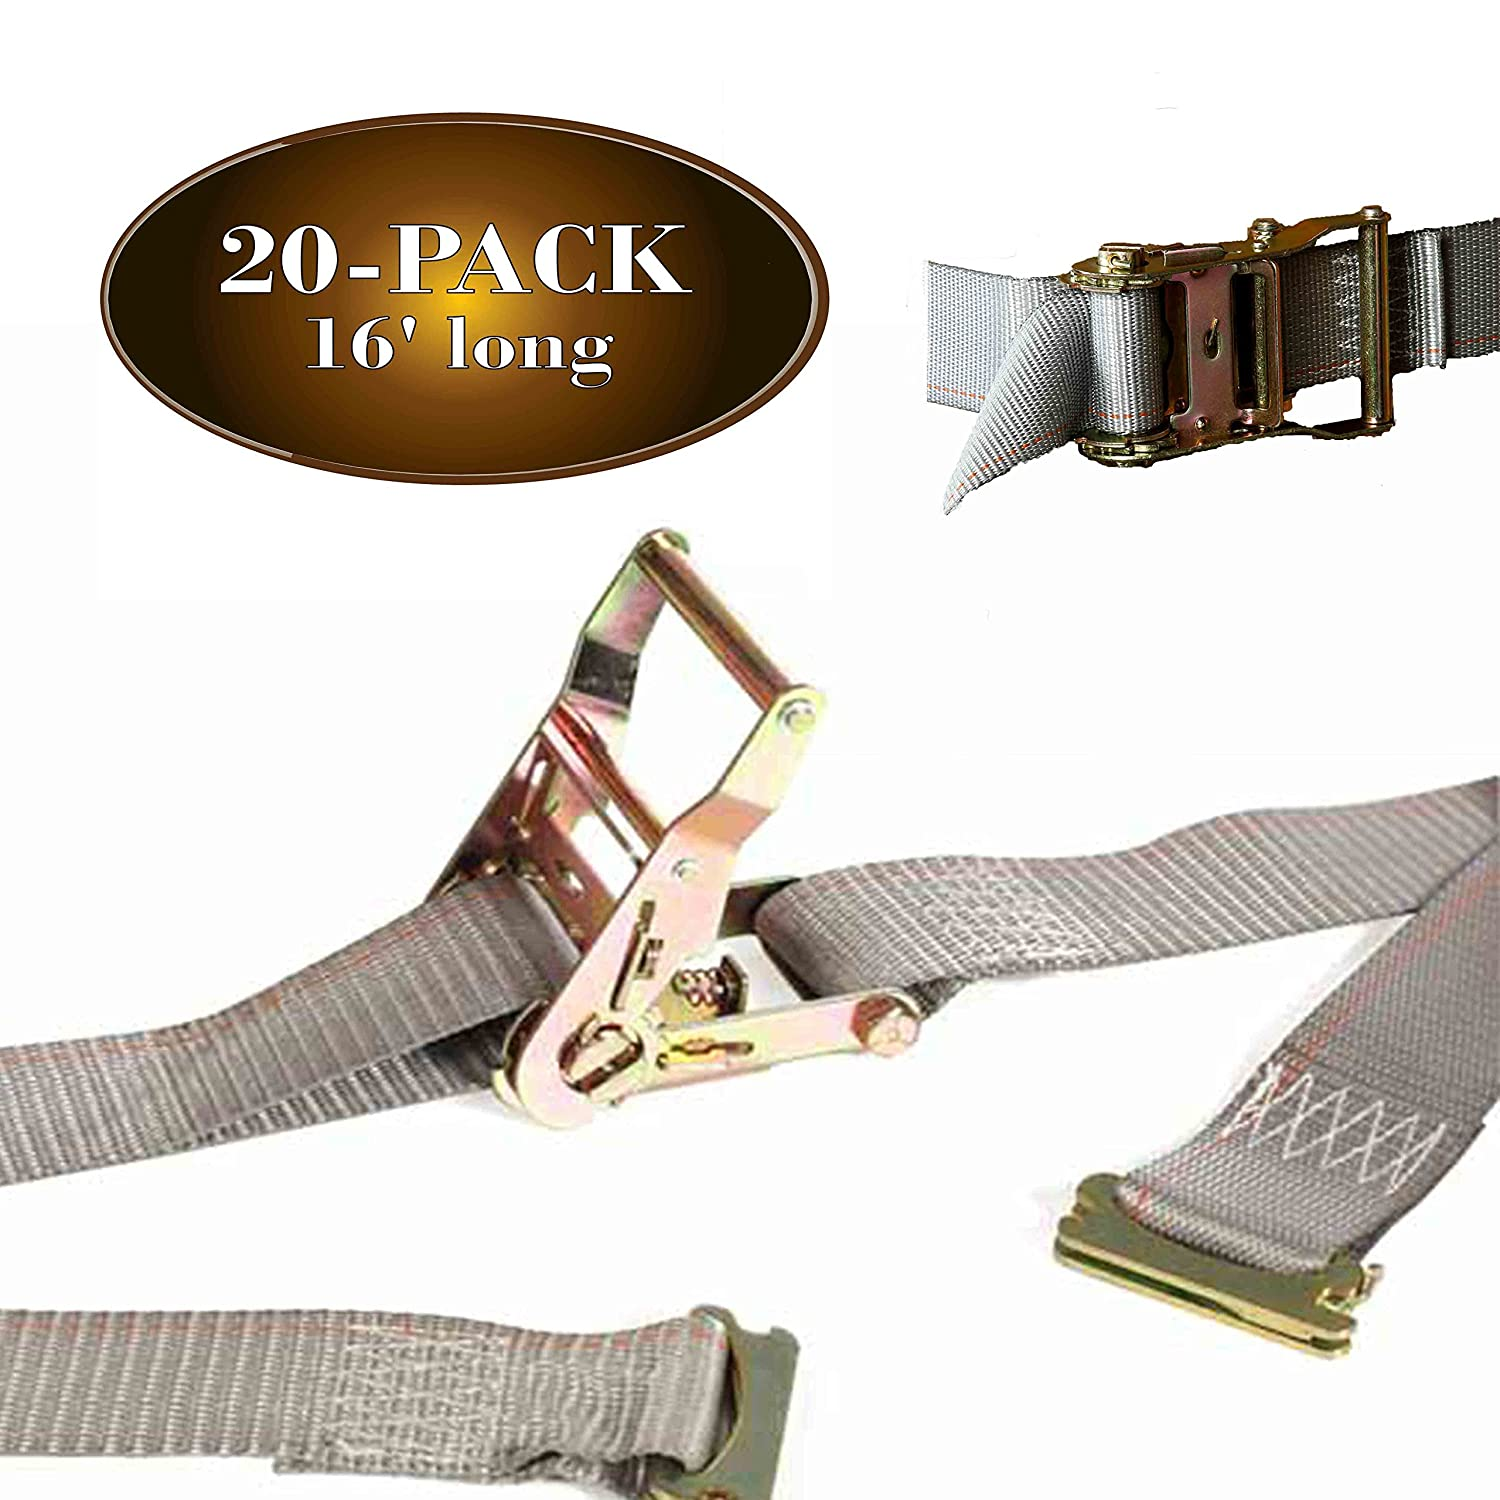 ETrack Spring Fittings 10 E Track Ratchet Tie-Down Cargo Straps Heavy Duty Grey Polyester Tie-Downs 2 x 16 Durable Ratcheting Strap Cargo TieDowns